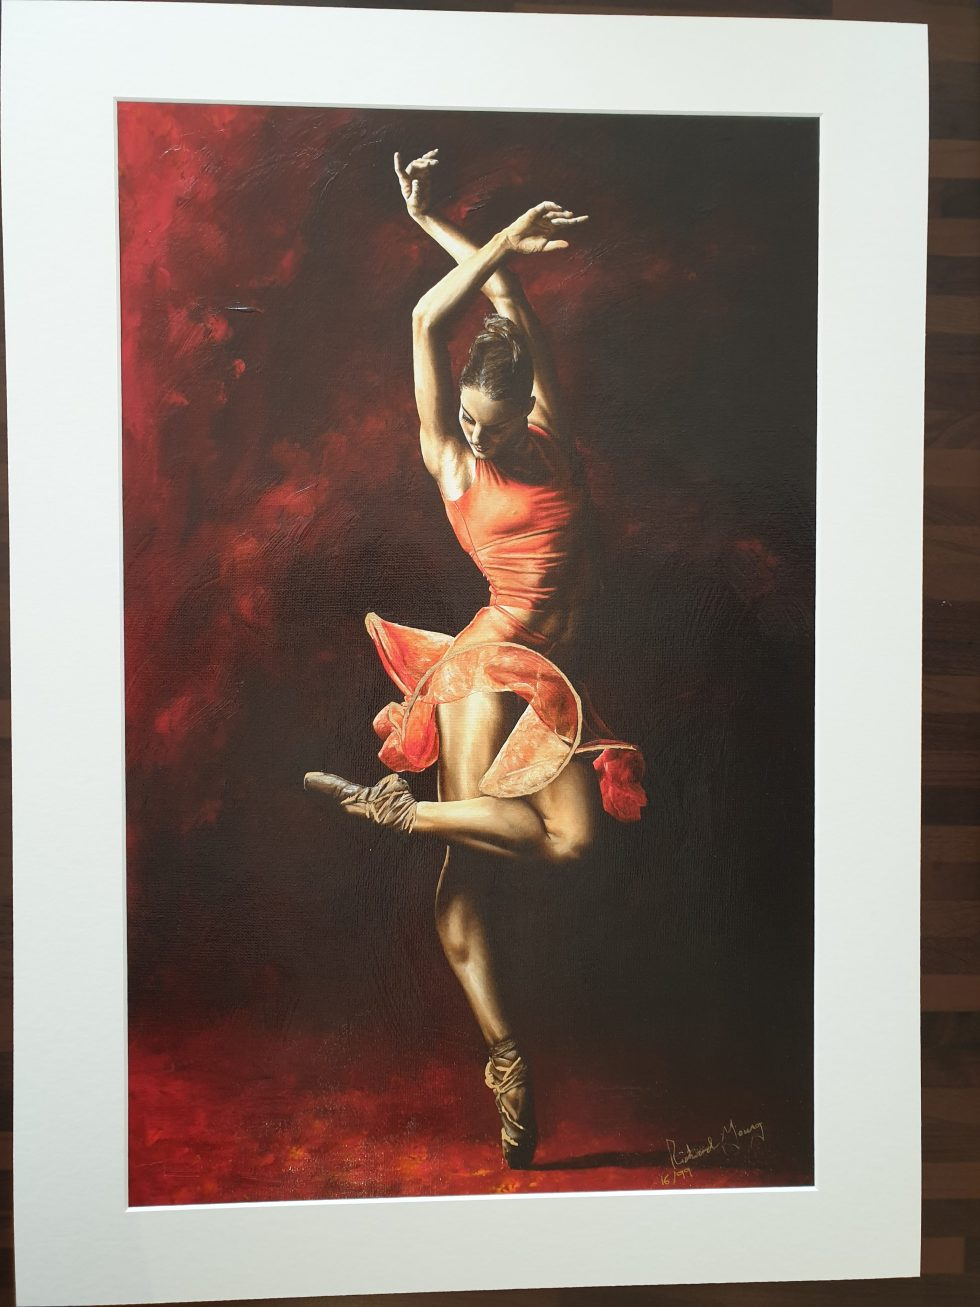 The Passion of Dance Hand Embellished Ltd Edition Print - Mounted